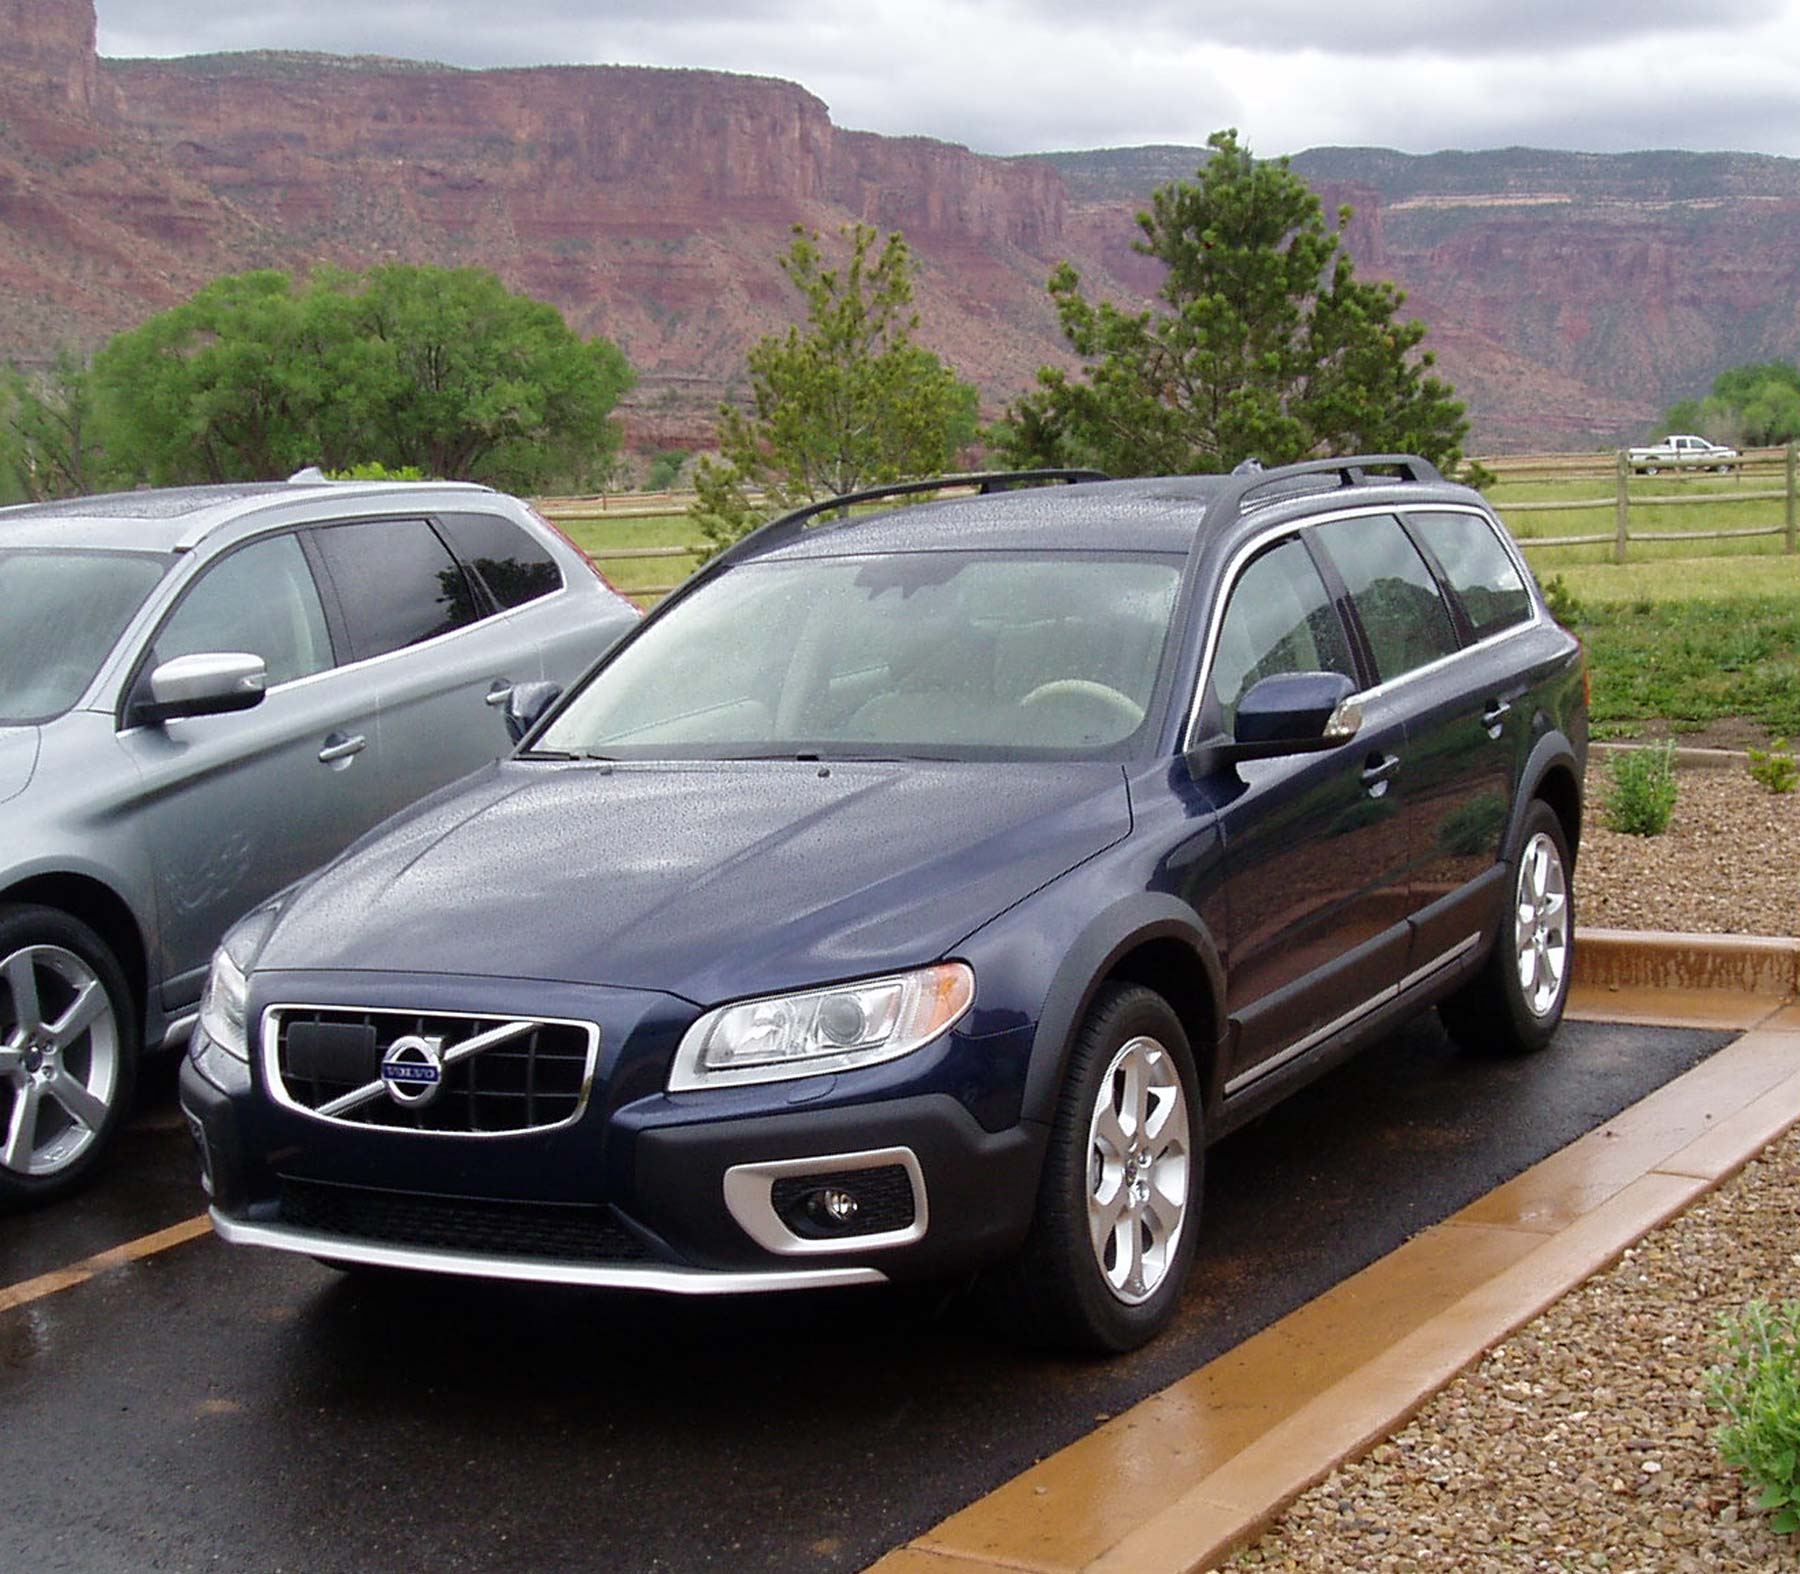 Volvo V70 Cross Countryvolvo Xc70 At Concept Youtube 2004 Country 299px Image 2